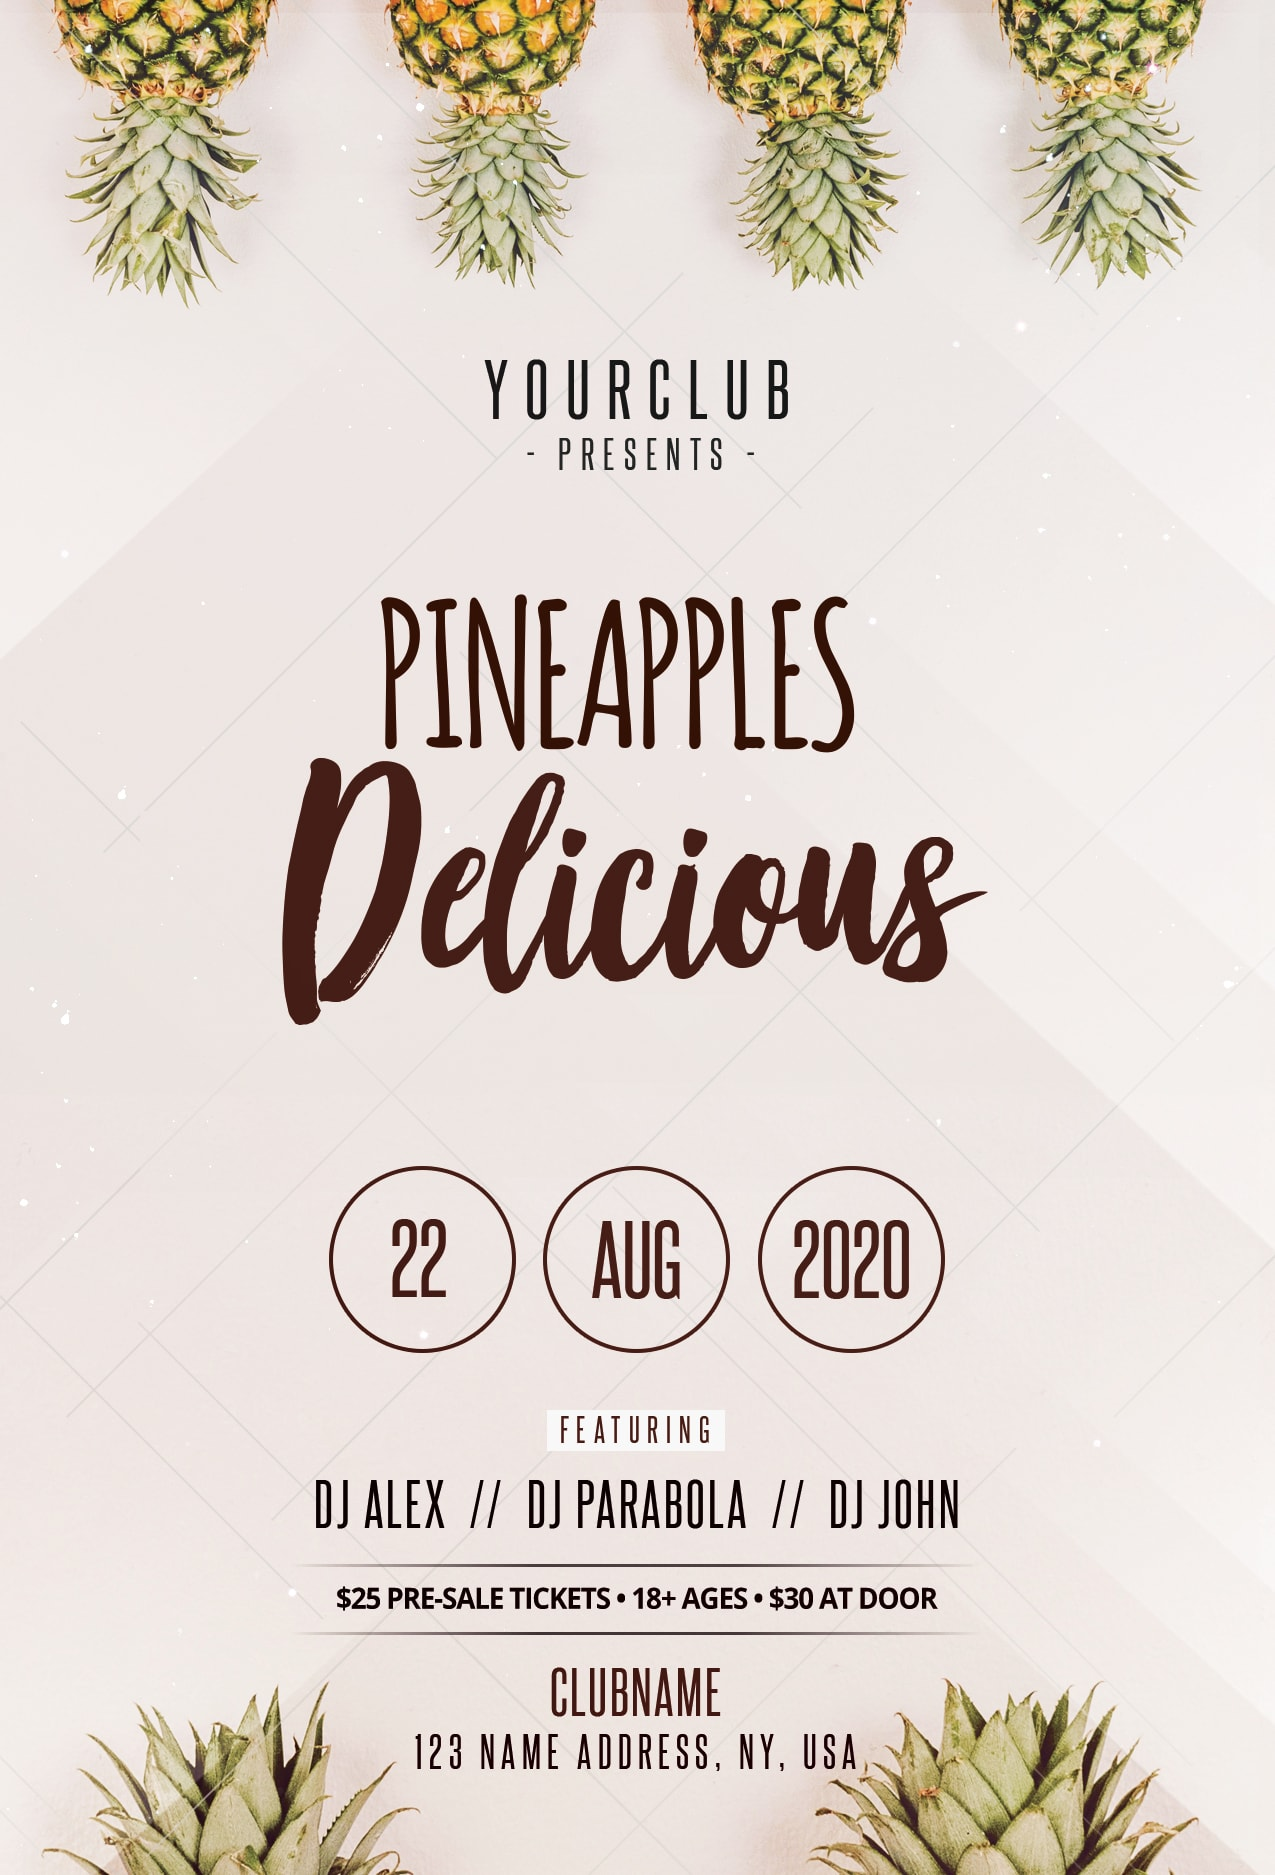 Pineapples Invitation - Minimal Free PSD Flyer Template